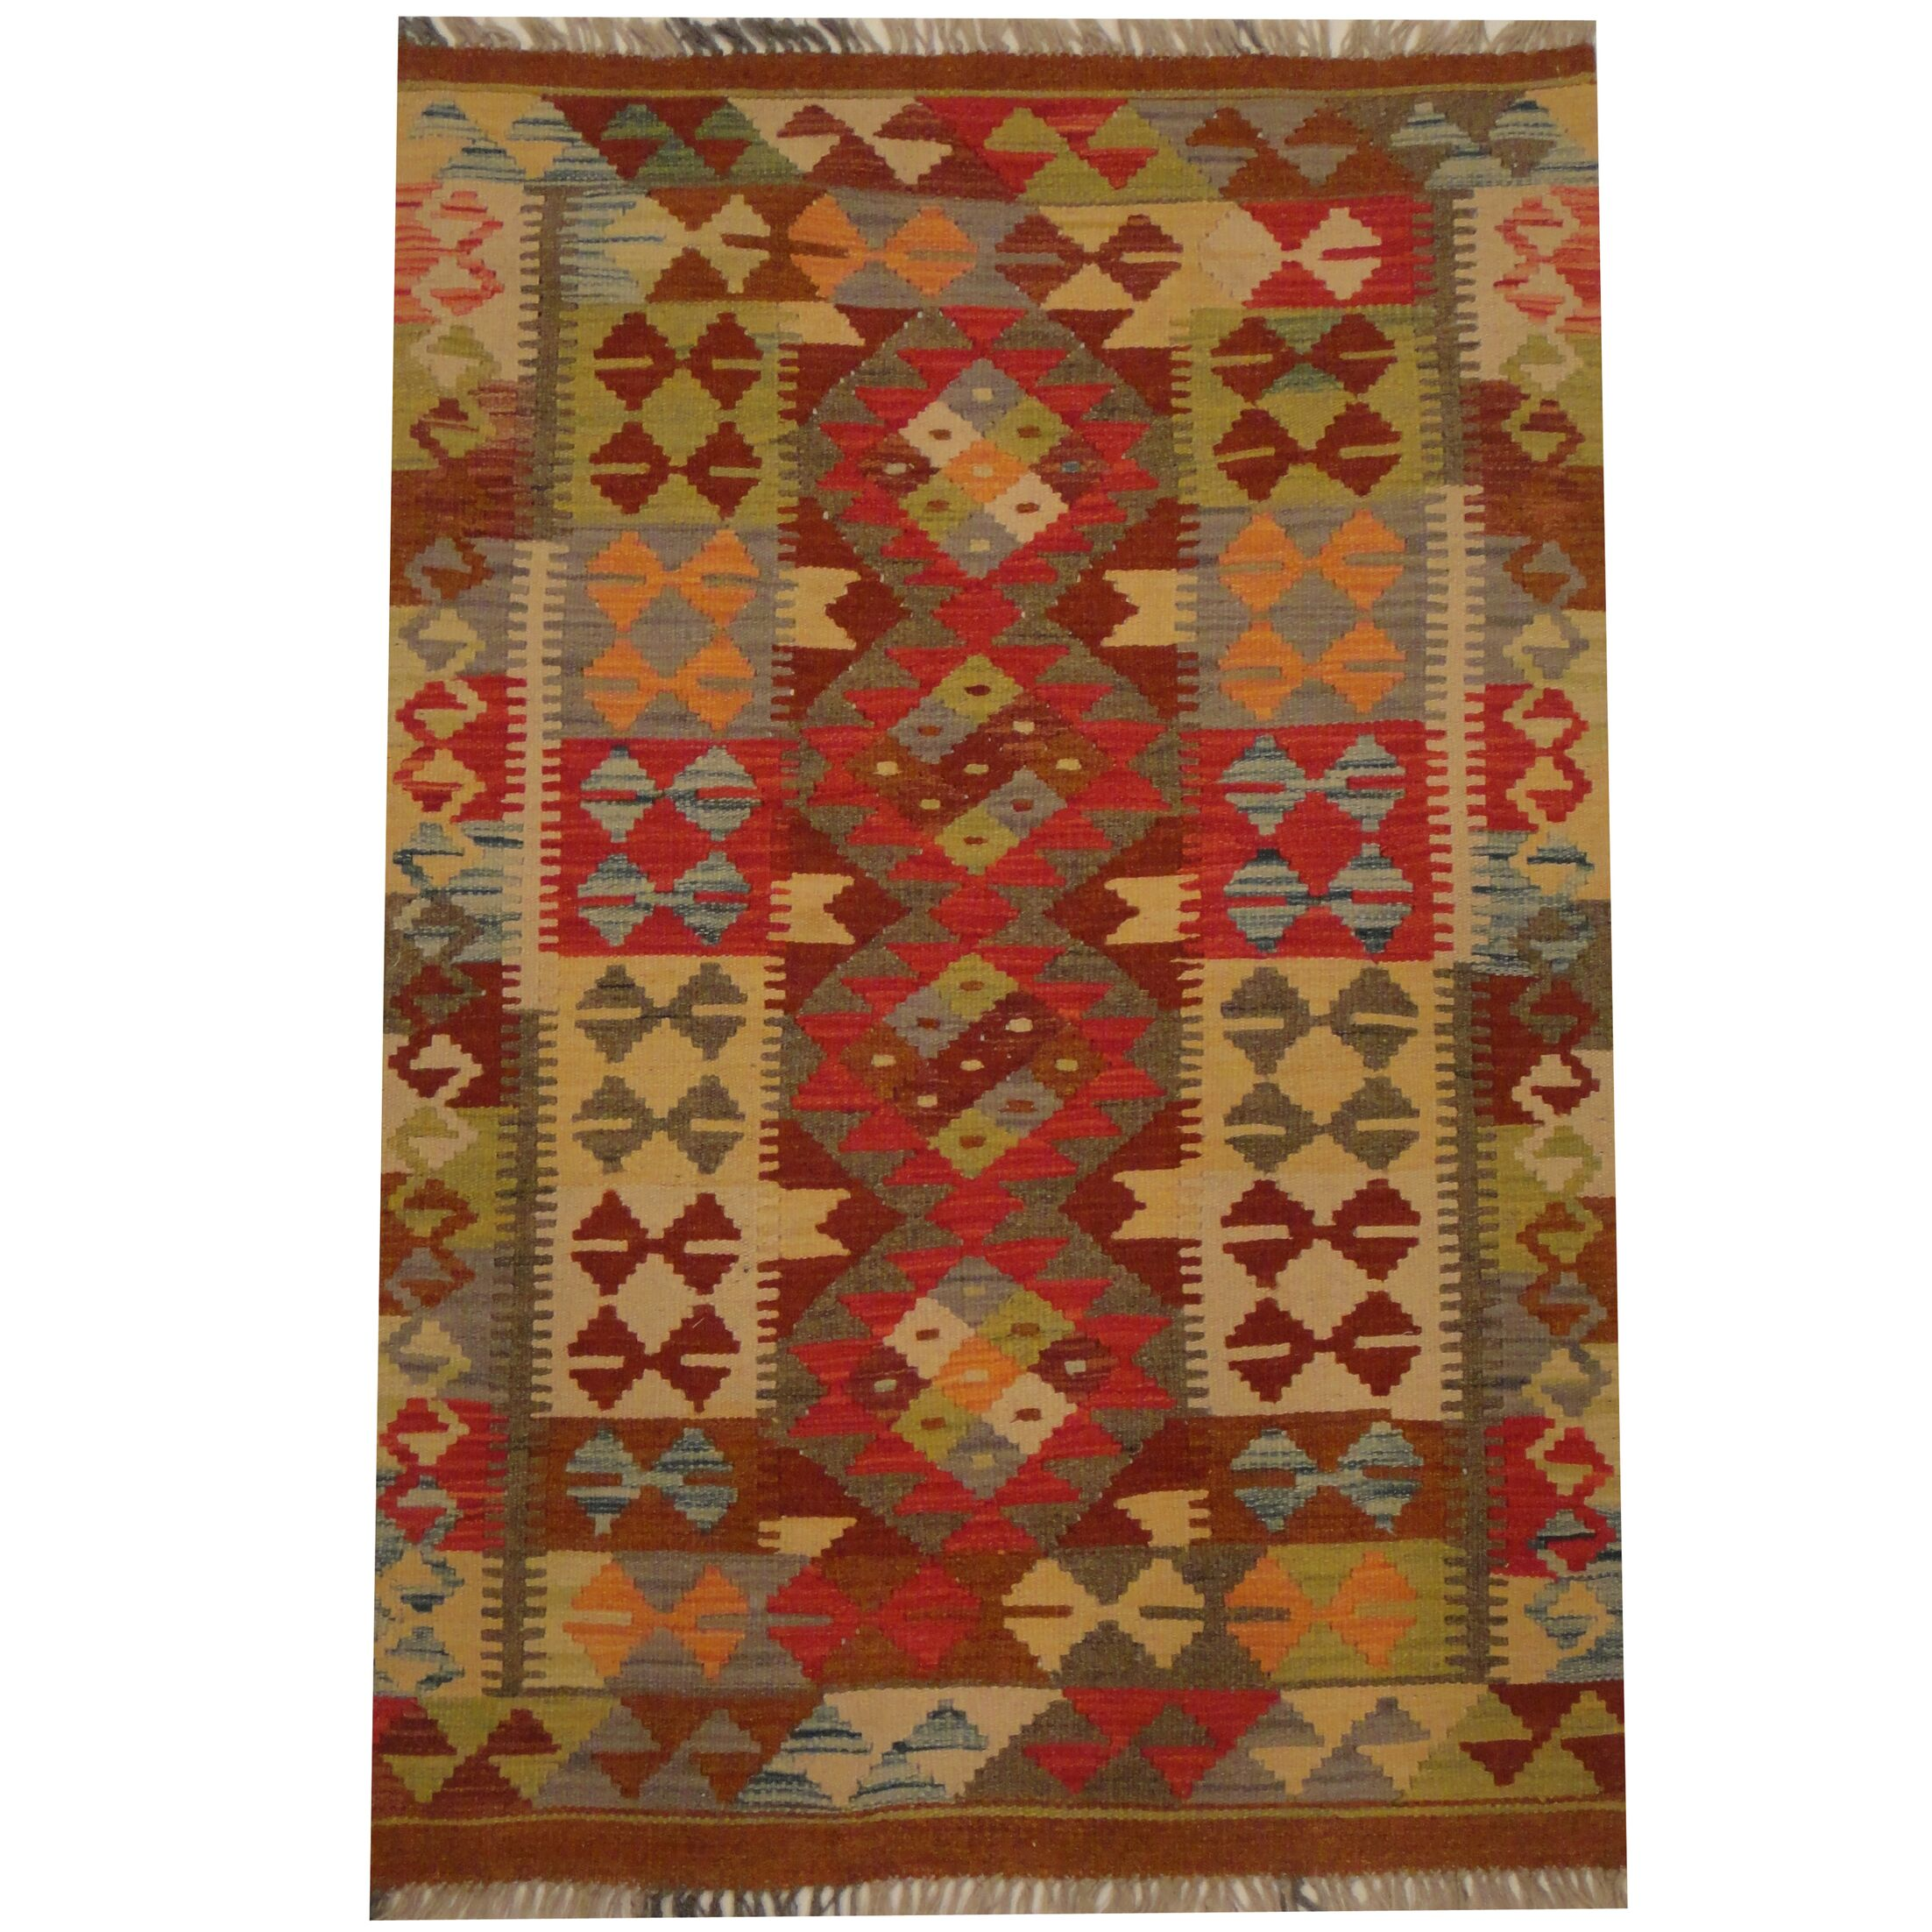 Kilim Tribal Hand-Woven Wool Red / Brown Area Rug